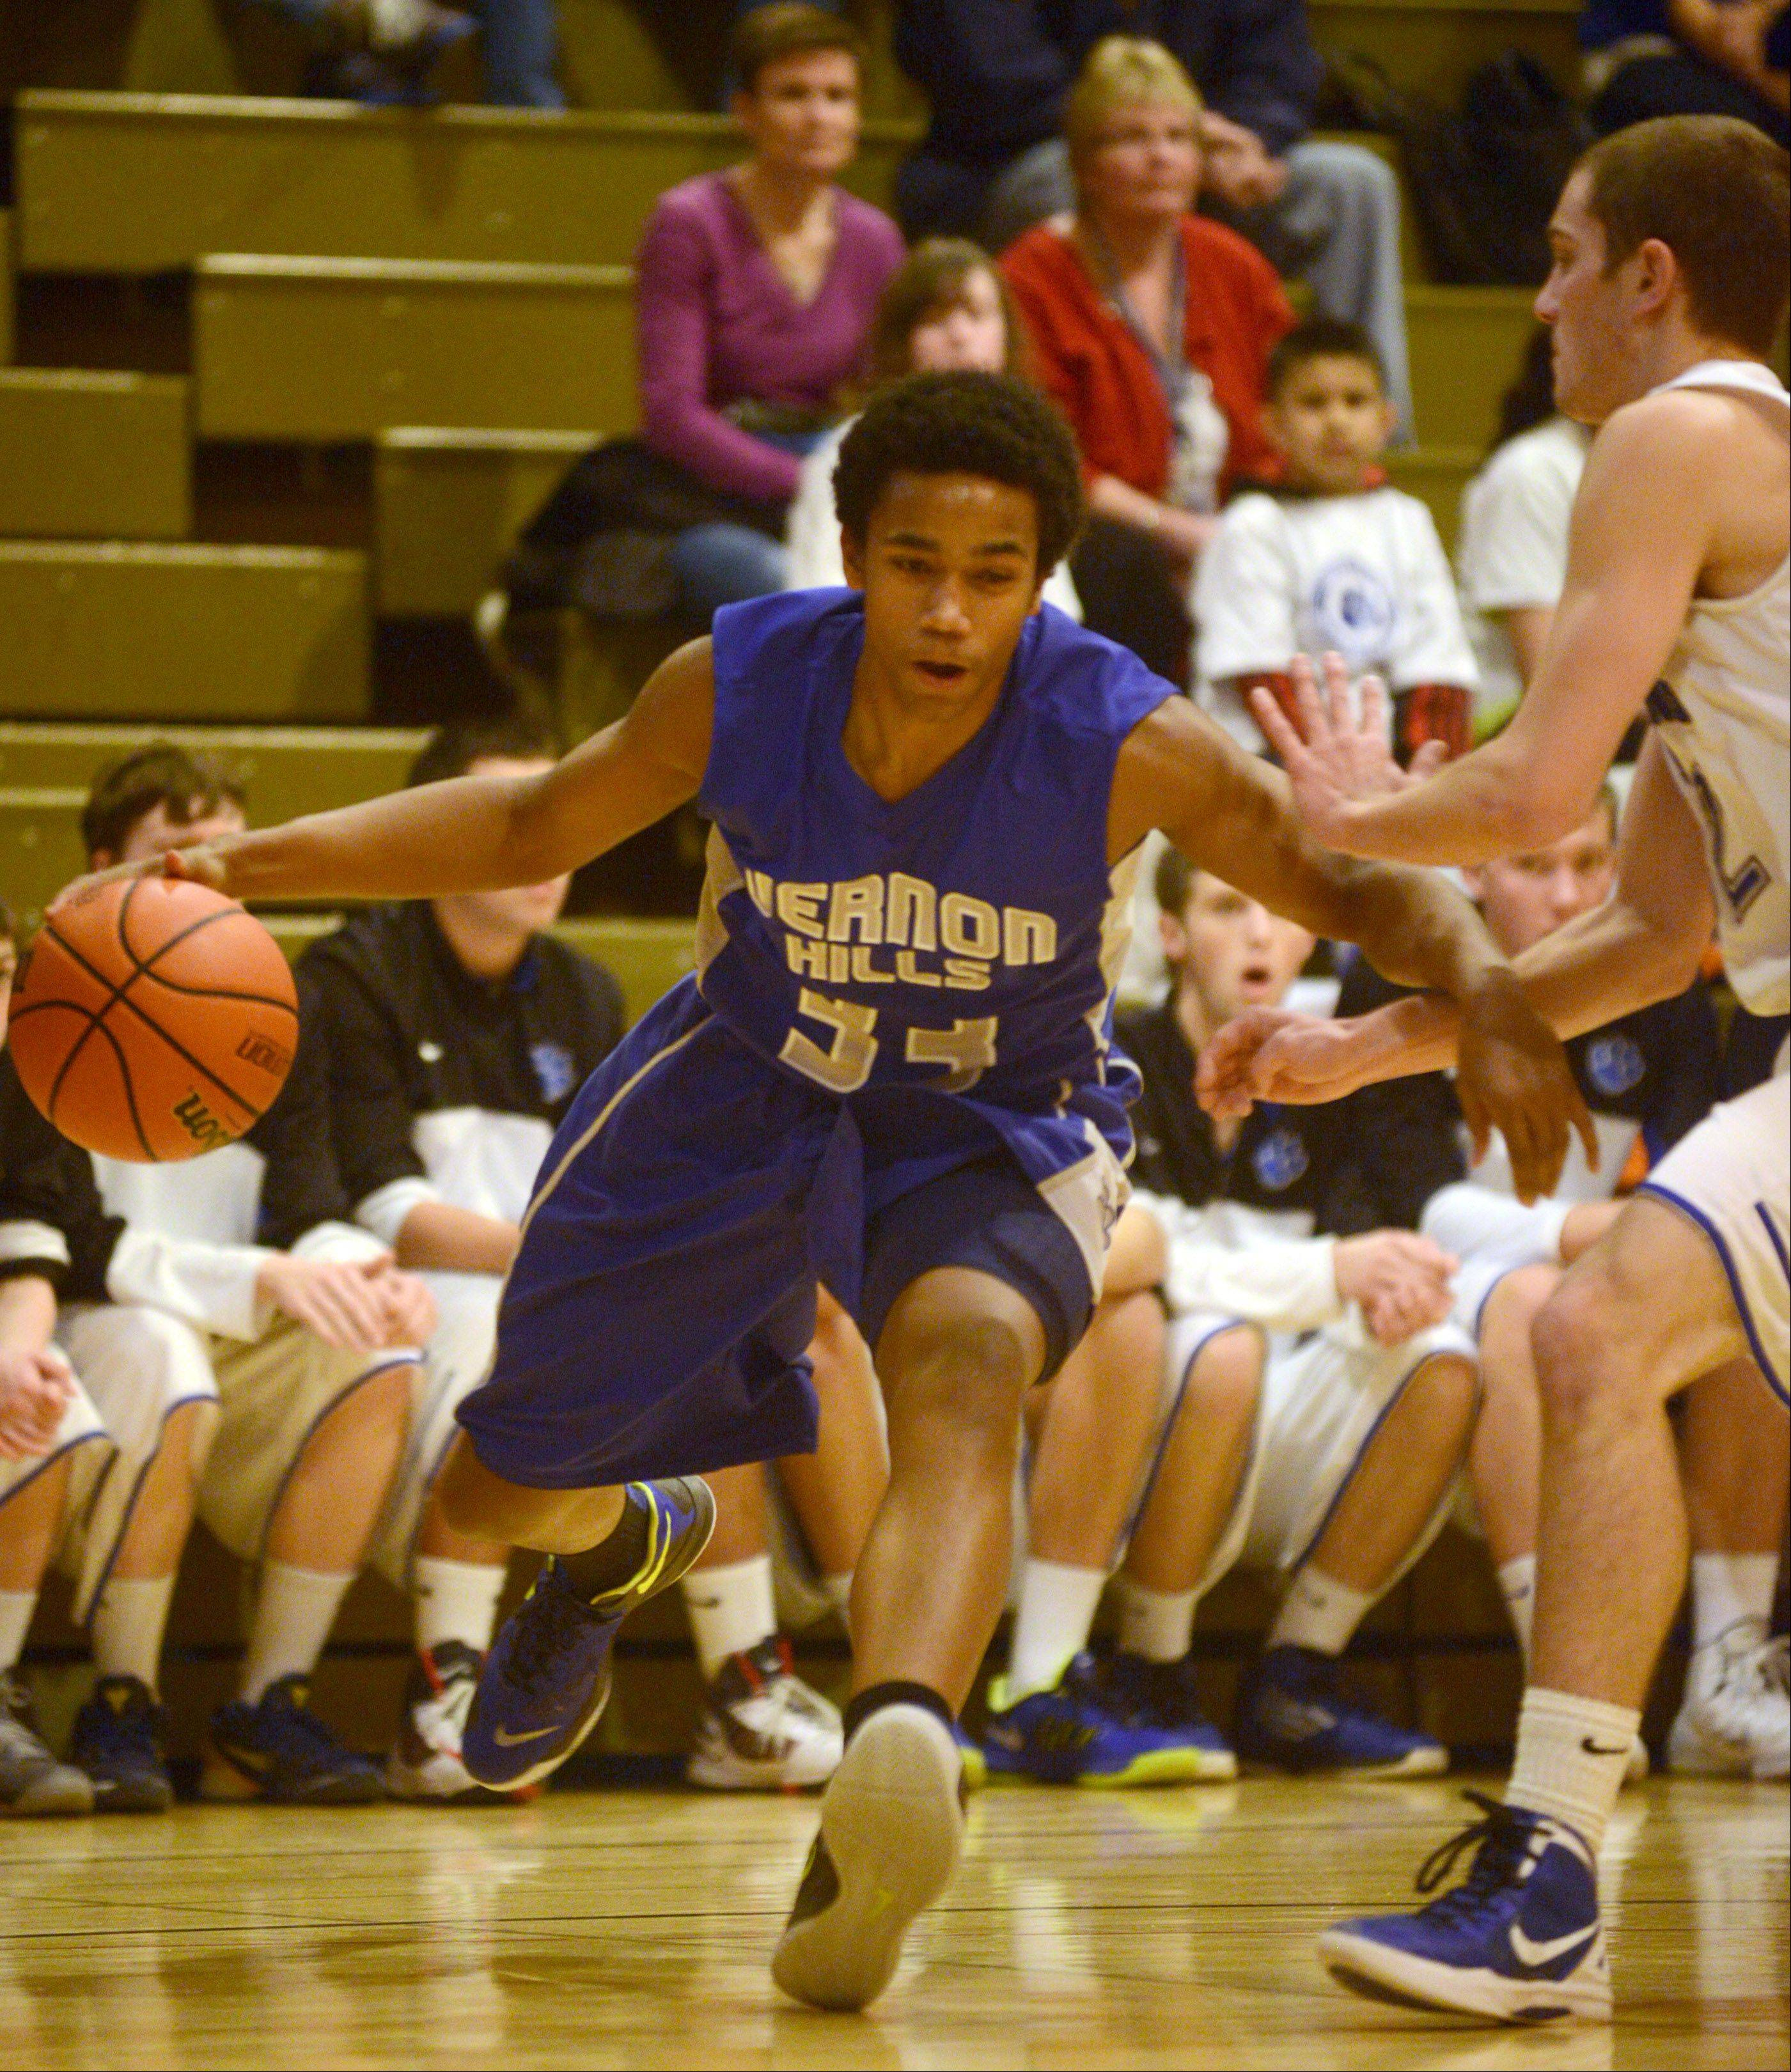 Wheeling vs. Vernon Hills at the Wheeling Hardwood Classic boys basketball tournament on Monday, Dec. 23.